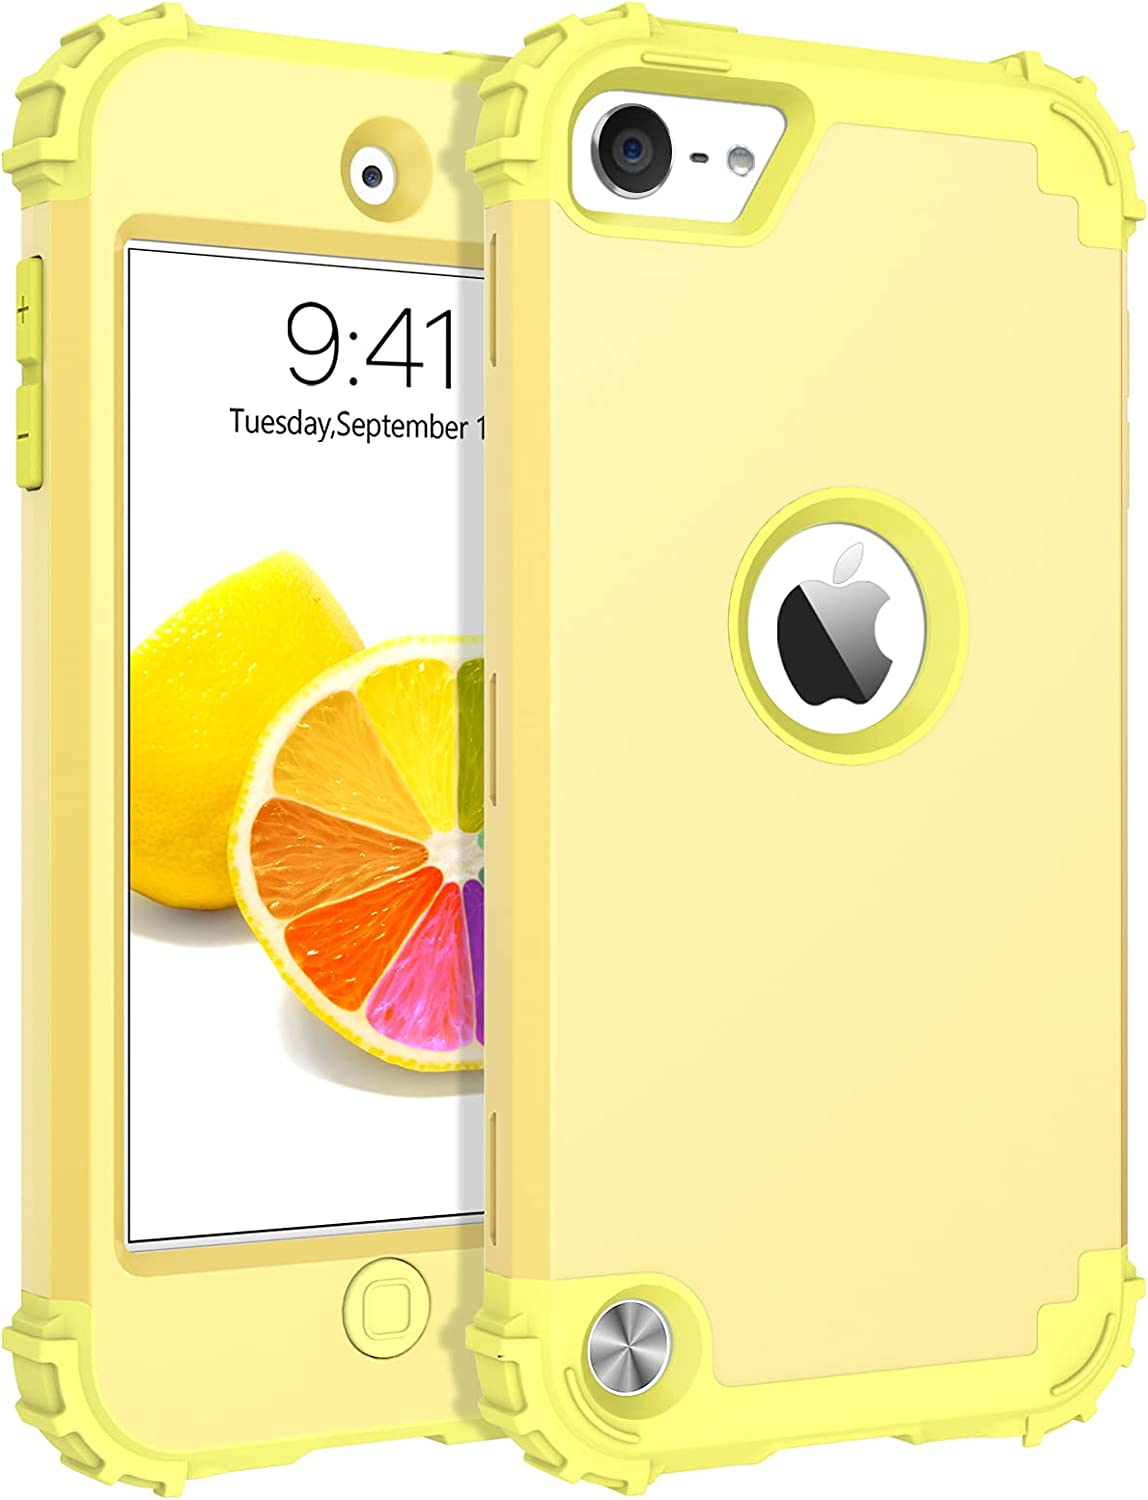 BENTOBEN iPod Touch 7 Case, iPod Touch 6 Case, iPod Touch 5 Case,3 in 1 Heavy Duty Rugged Hybrid Hard PC Bumper Shockproof Protective Girls Women Boys Men Cover iPod Touch 7th / 6th / 5th Gen, Yellow